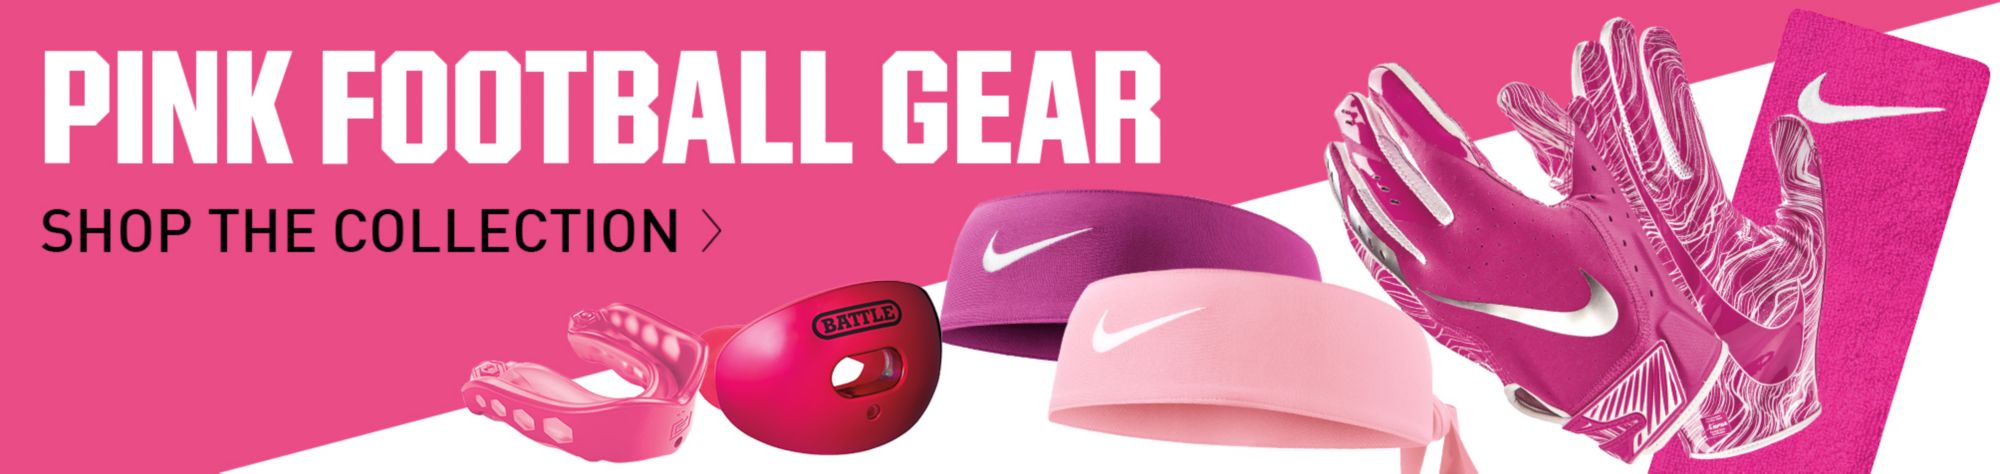 Pink Football Gear - Shop The Collection